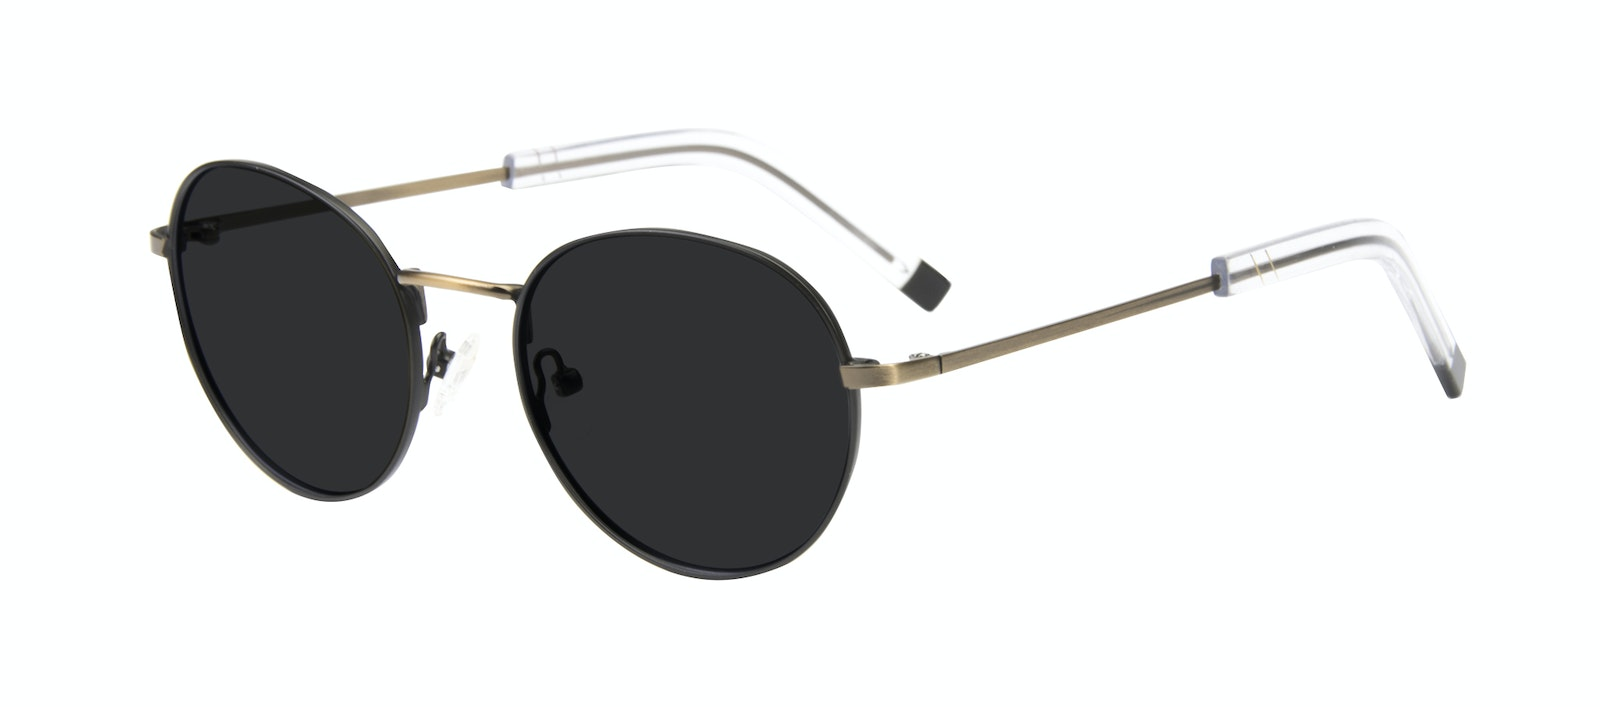 Affordable Fashion Glasses Round Sunglasses Men Lean Dark Brass Tilt